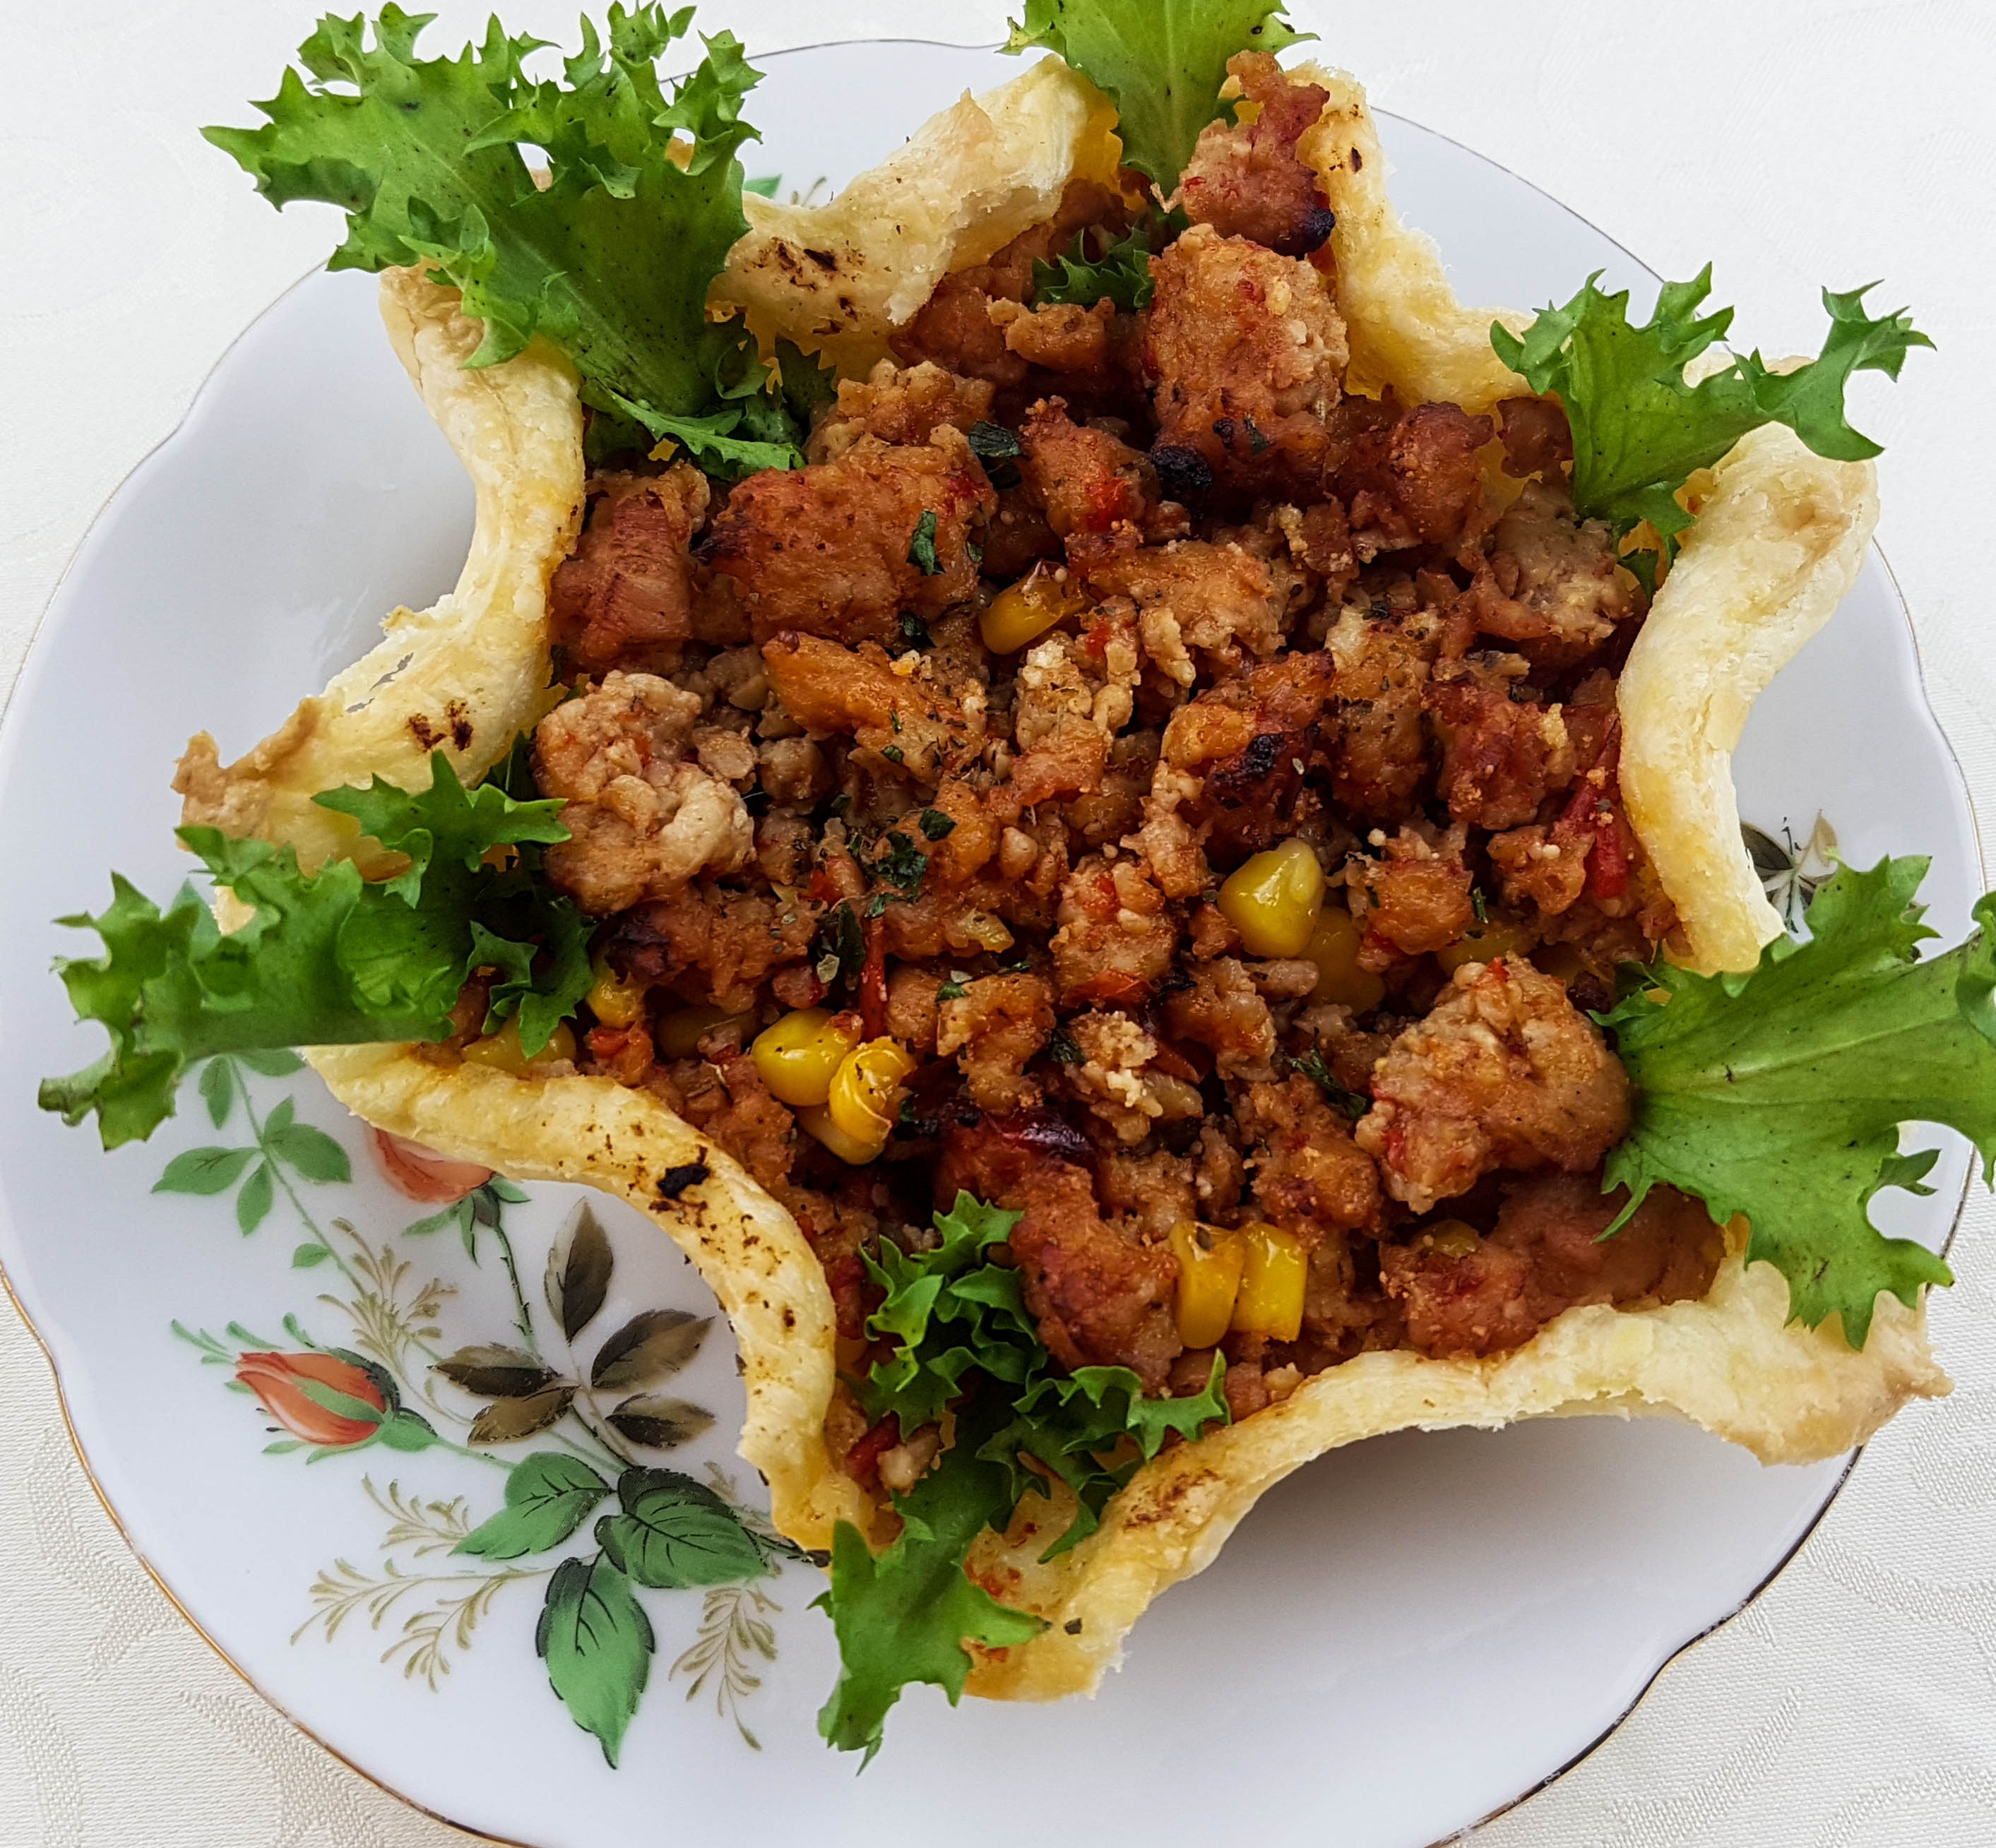 Minced chicken in puff pastry baskets